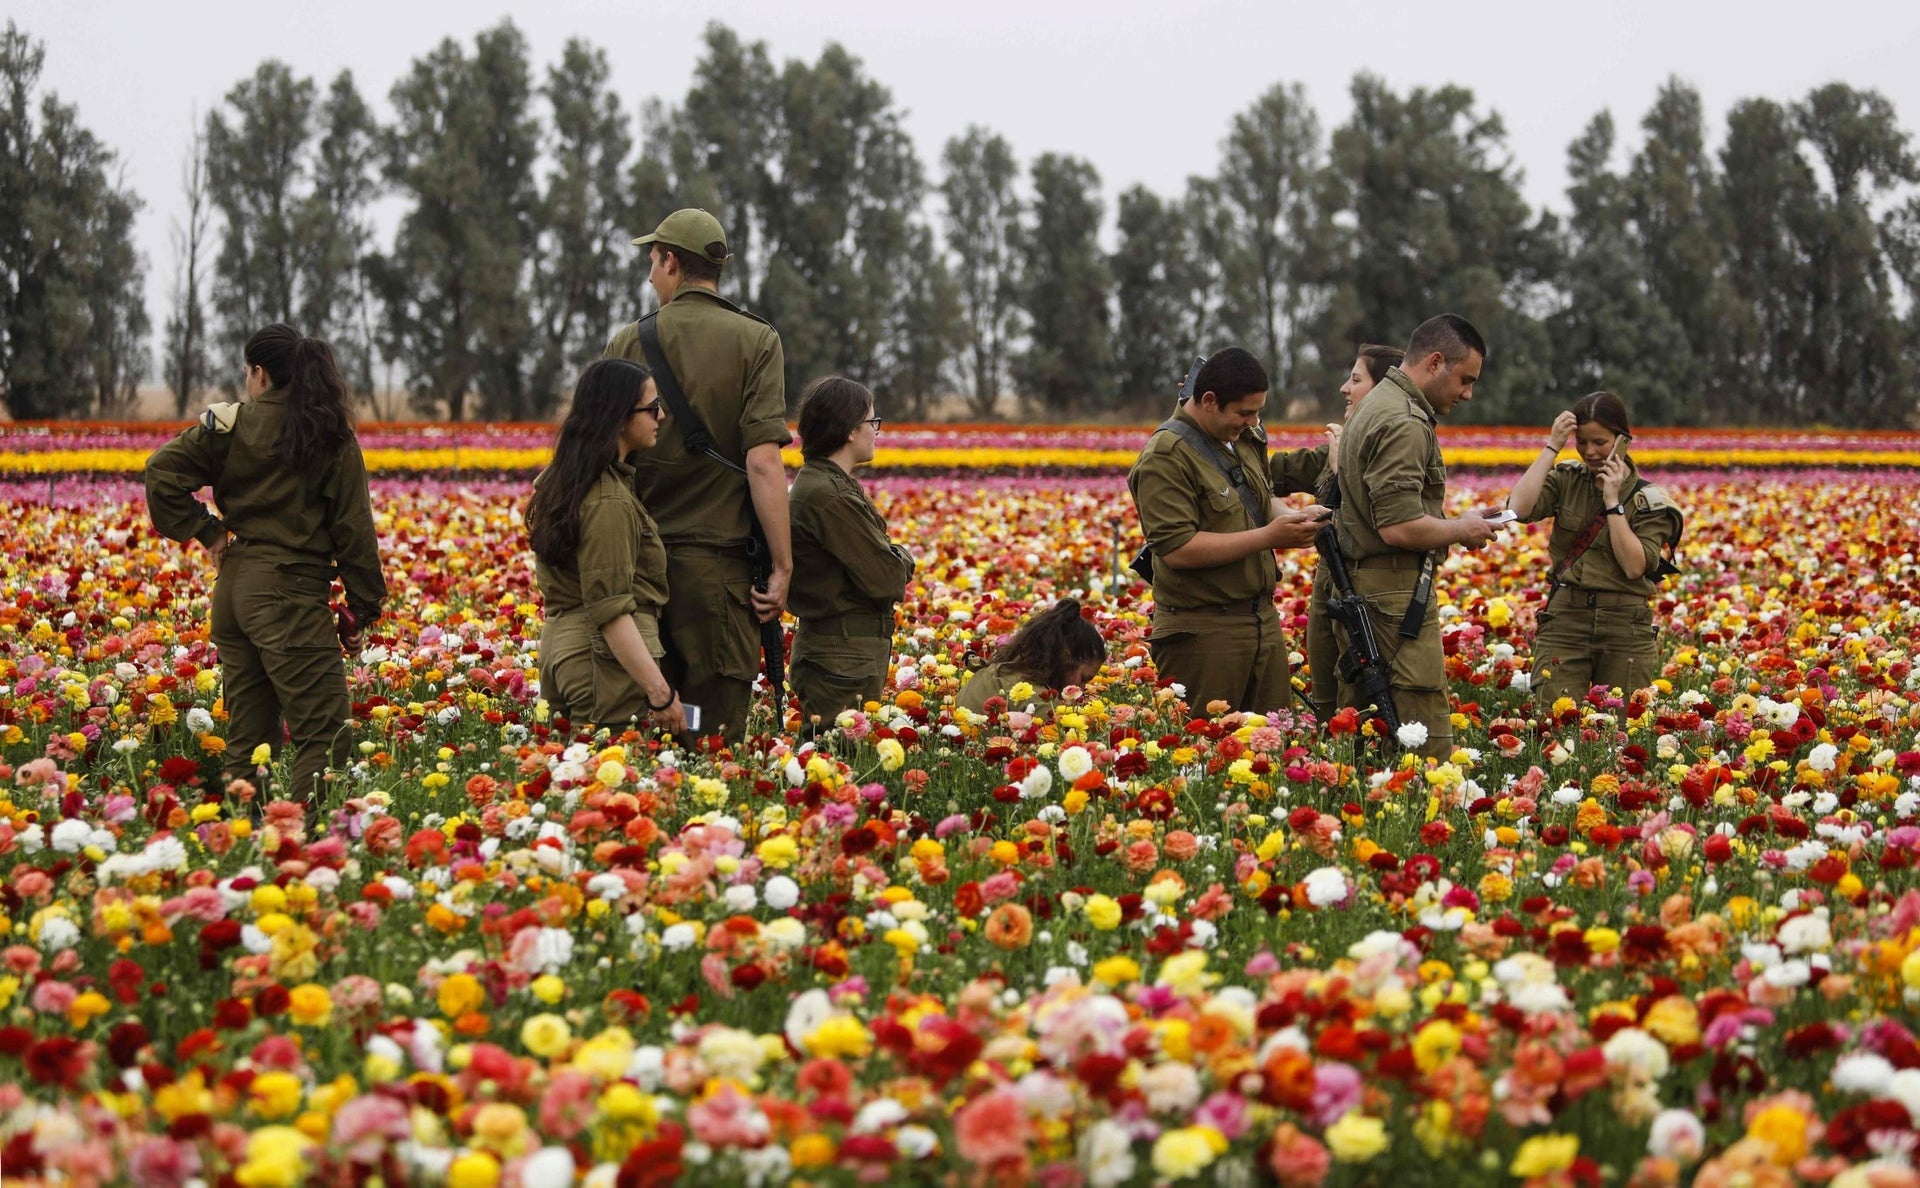 Israeli soldiers enjoy the Ranunculus flowers in a field in the southern Israeli Kibbutz of Nir Yitzhak, located along the Israeli-Gaza Strip border, during the Jewish holiday of Pesach (Passover) on April 12, 2017.